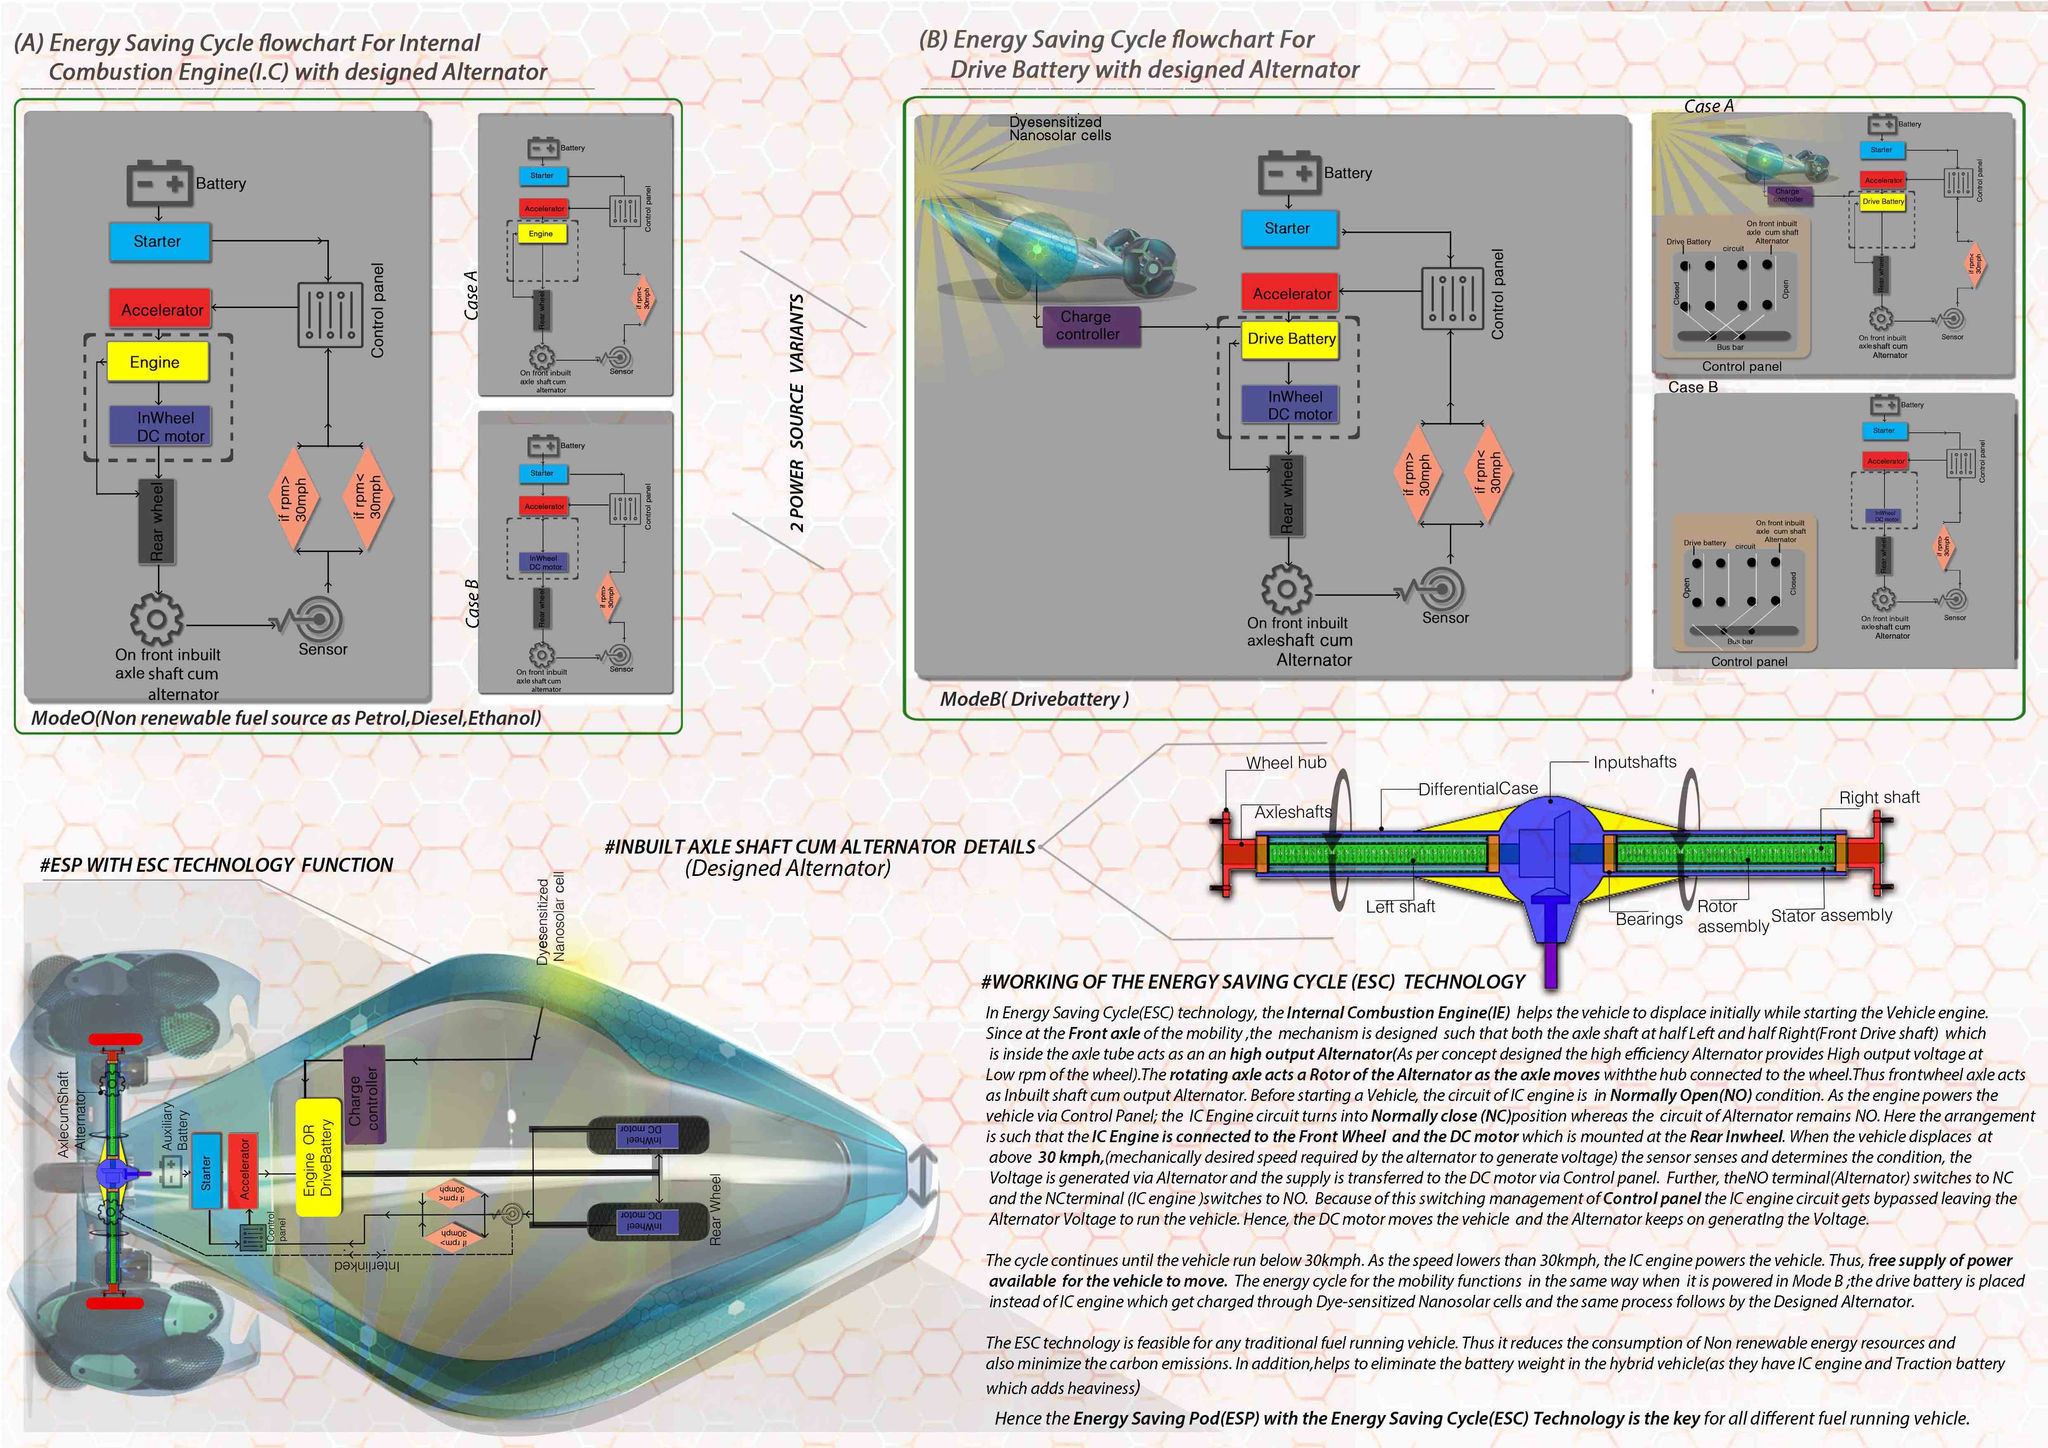 Holy Sheet Concept Esc Technology Provides Free Fuel For The Vehicle Combustion Engine Diagram Idiots Battery Is Placed Instead Of Ic Which Get Charged Through Dye Sensitized Nanosolar Cells And Same Process Follows By Designed Alternator